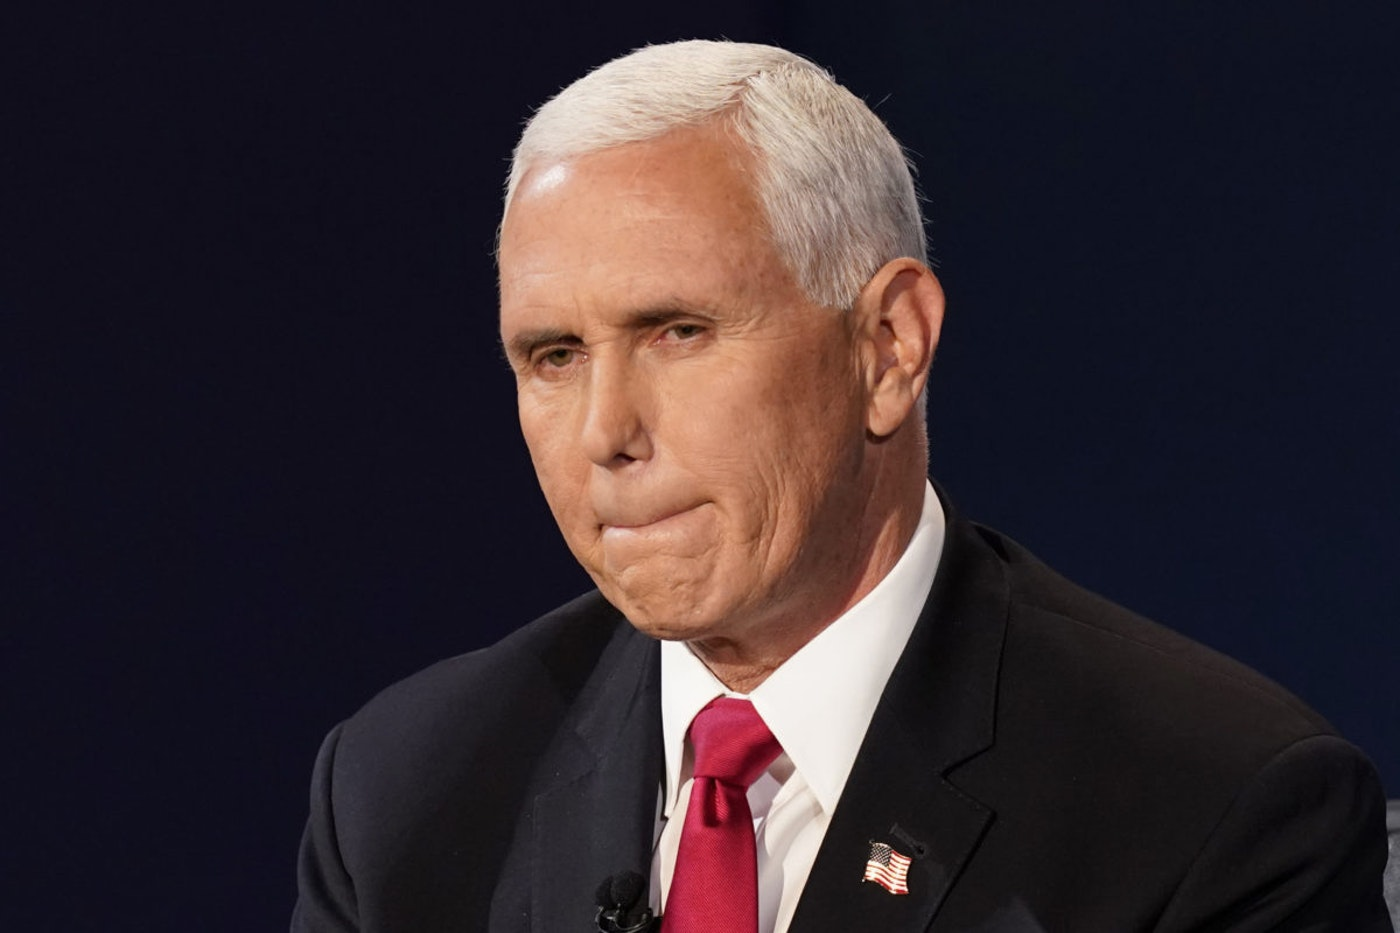 Vice President Mike Pence, leader of the White House Coronavirus Task Force, has so far tested negative for COVID-19 despite a growing outbreak within his offices.